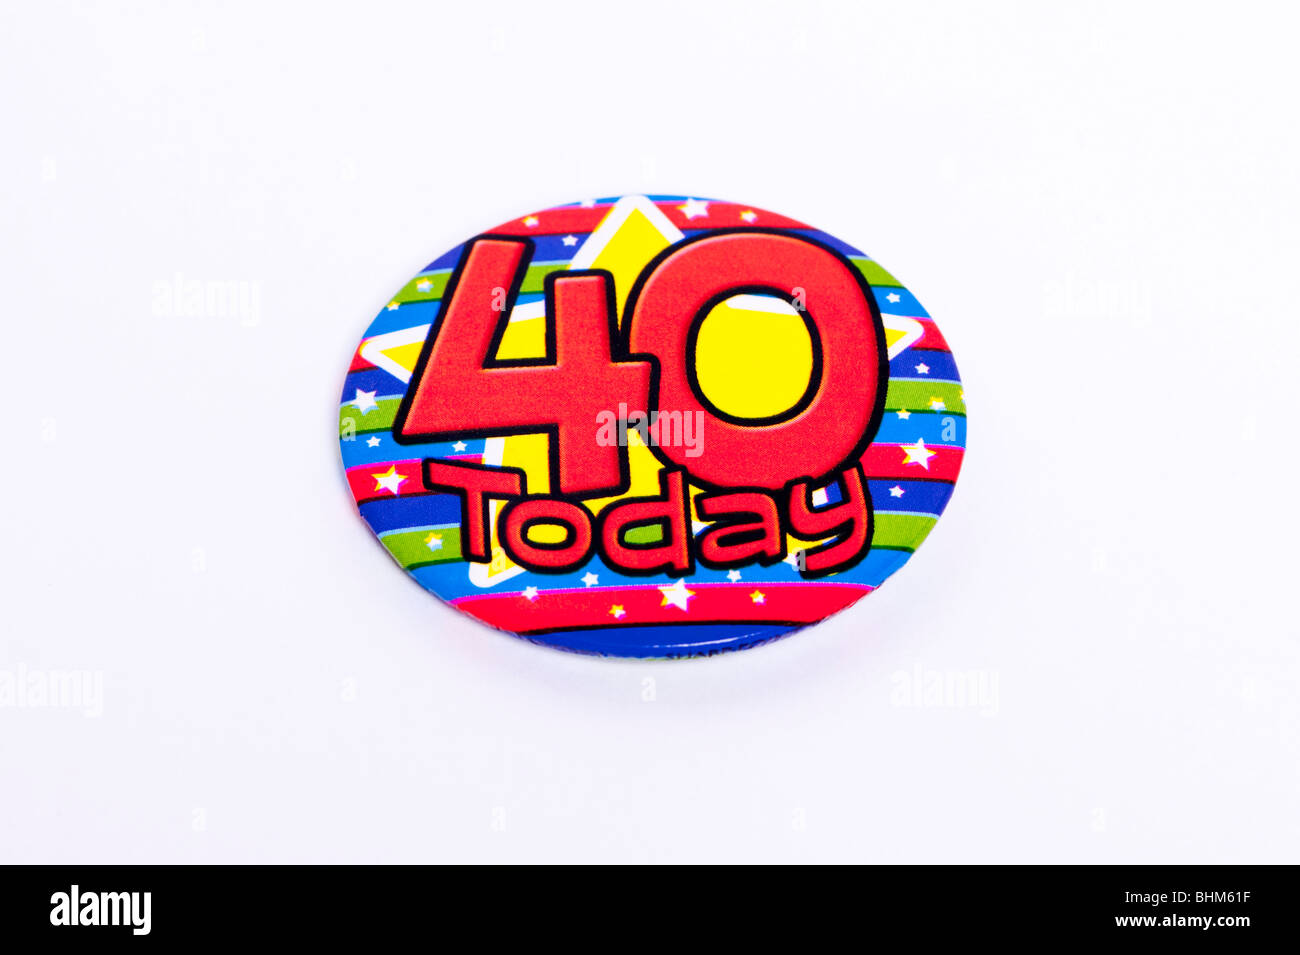 A 40 today badge on a white background - Stock Image